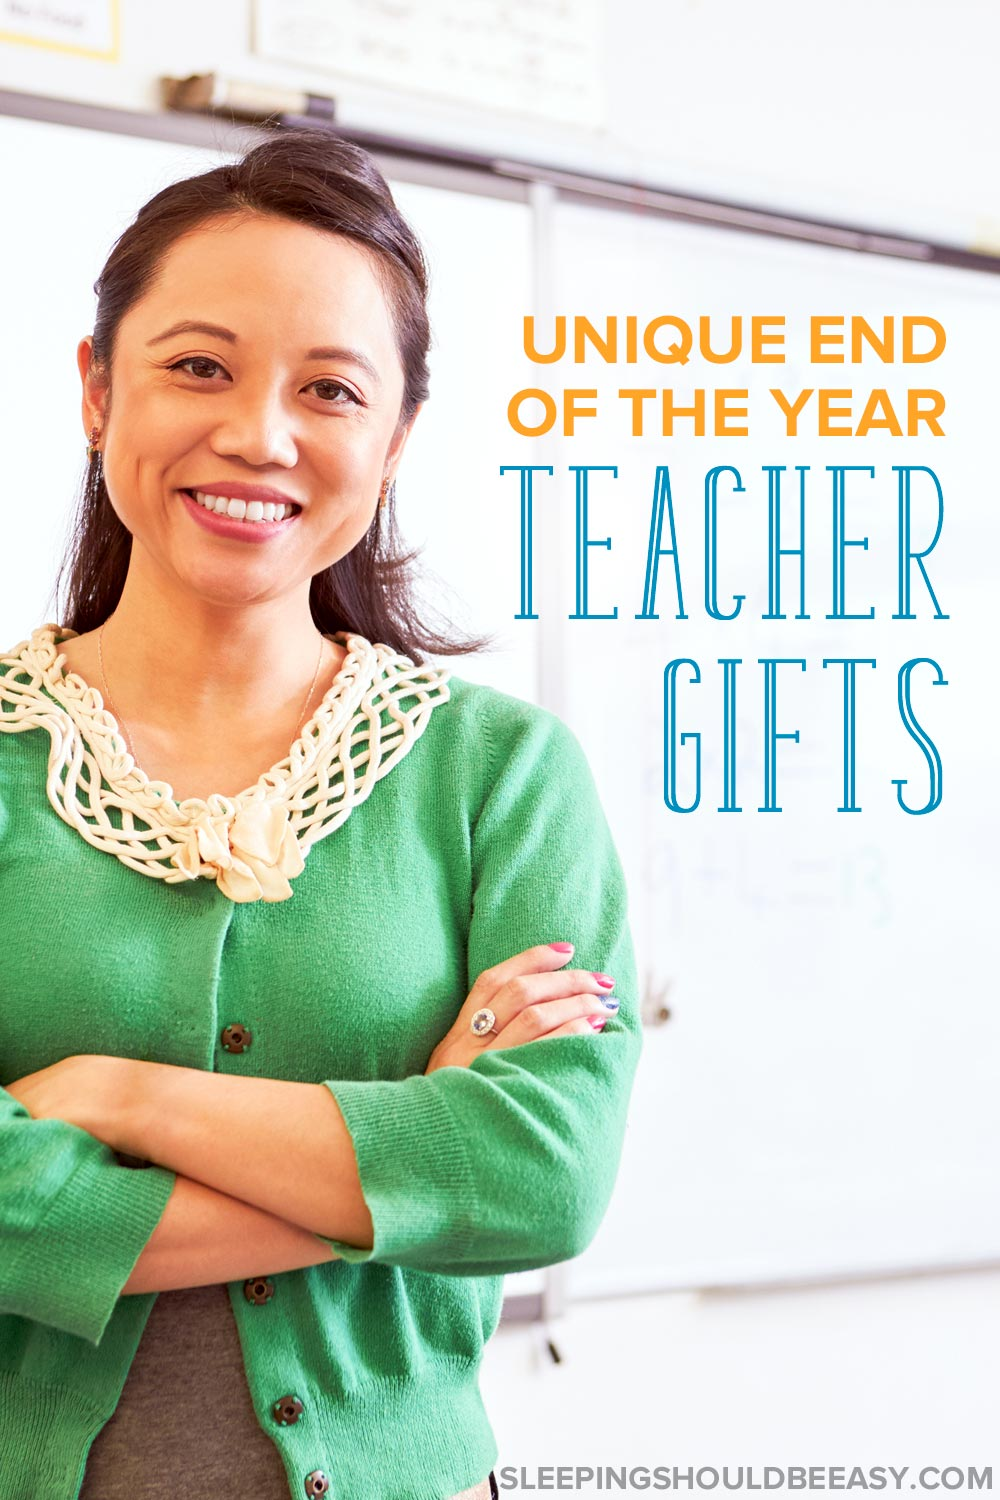 End of the year teacher gifts